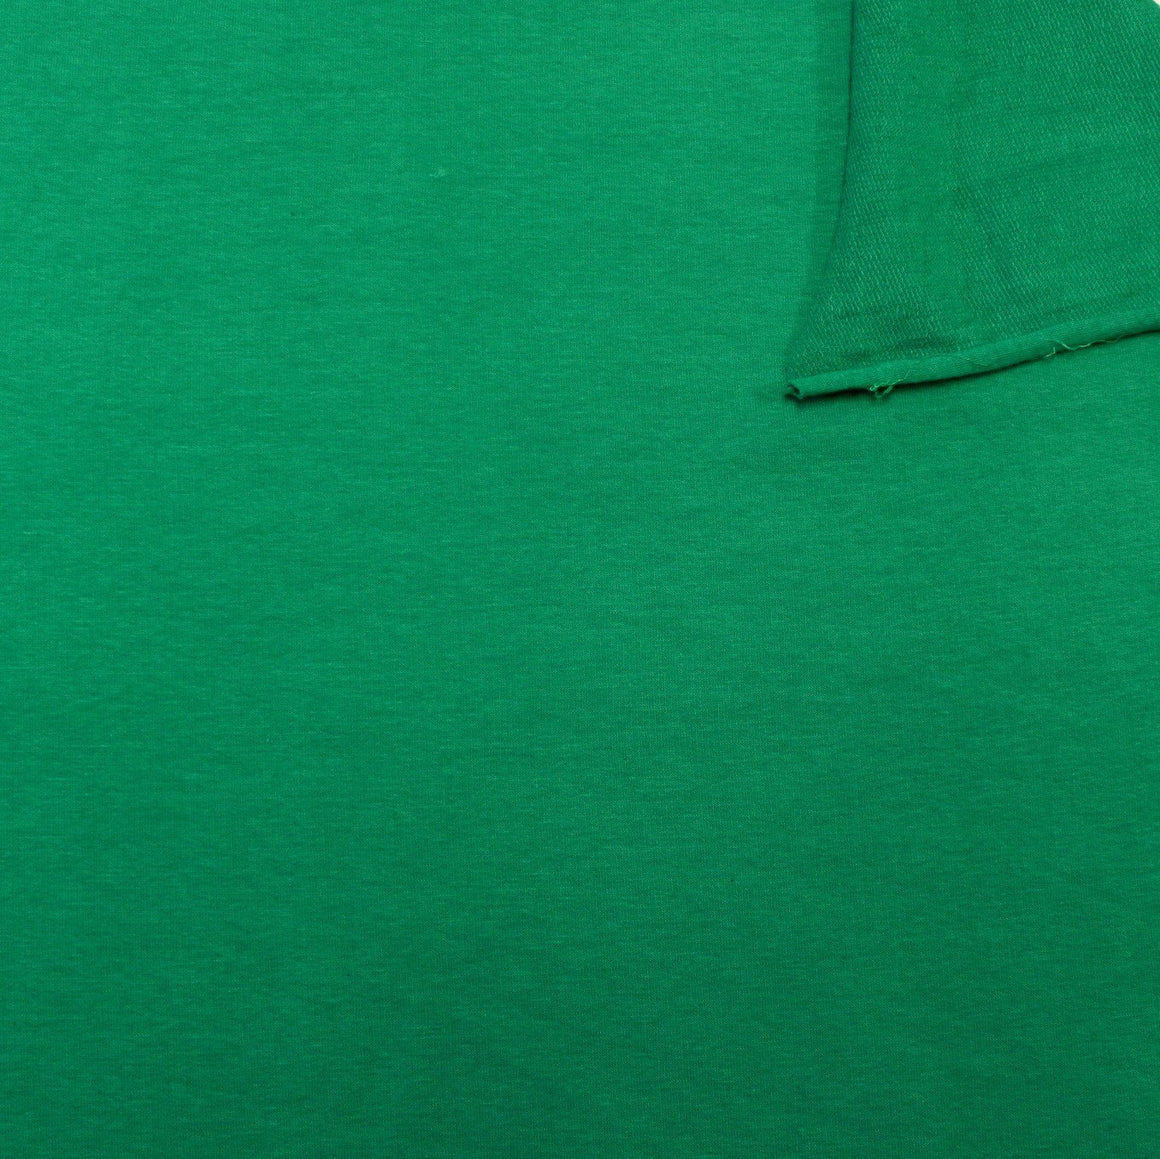 Solid Kelly Green 4 Way Stretch French Terry Knit Fabric With Spandex - Raspberry Creek Fabrics